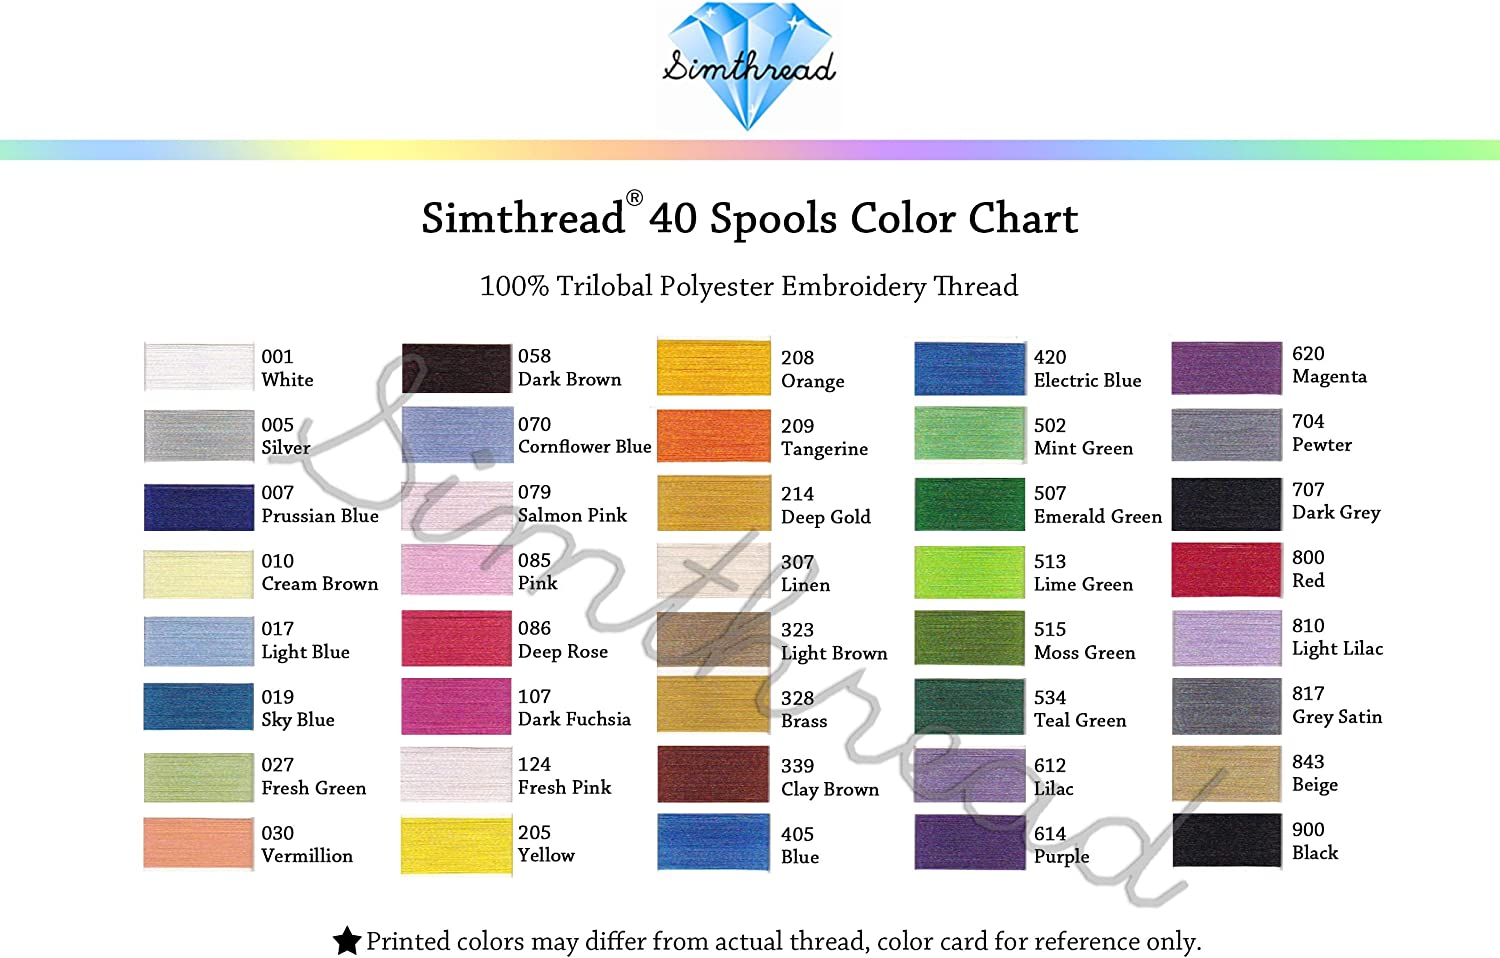 Brother satin finish embroidery thread 300m spool VERMILION 030